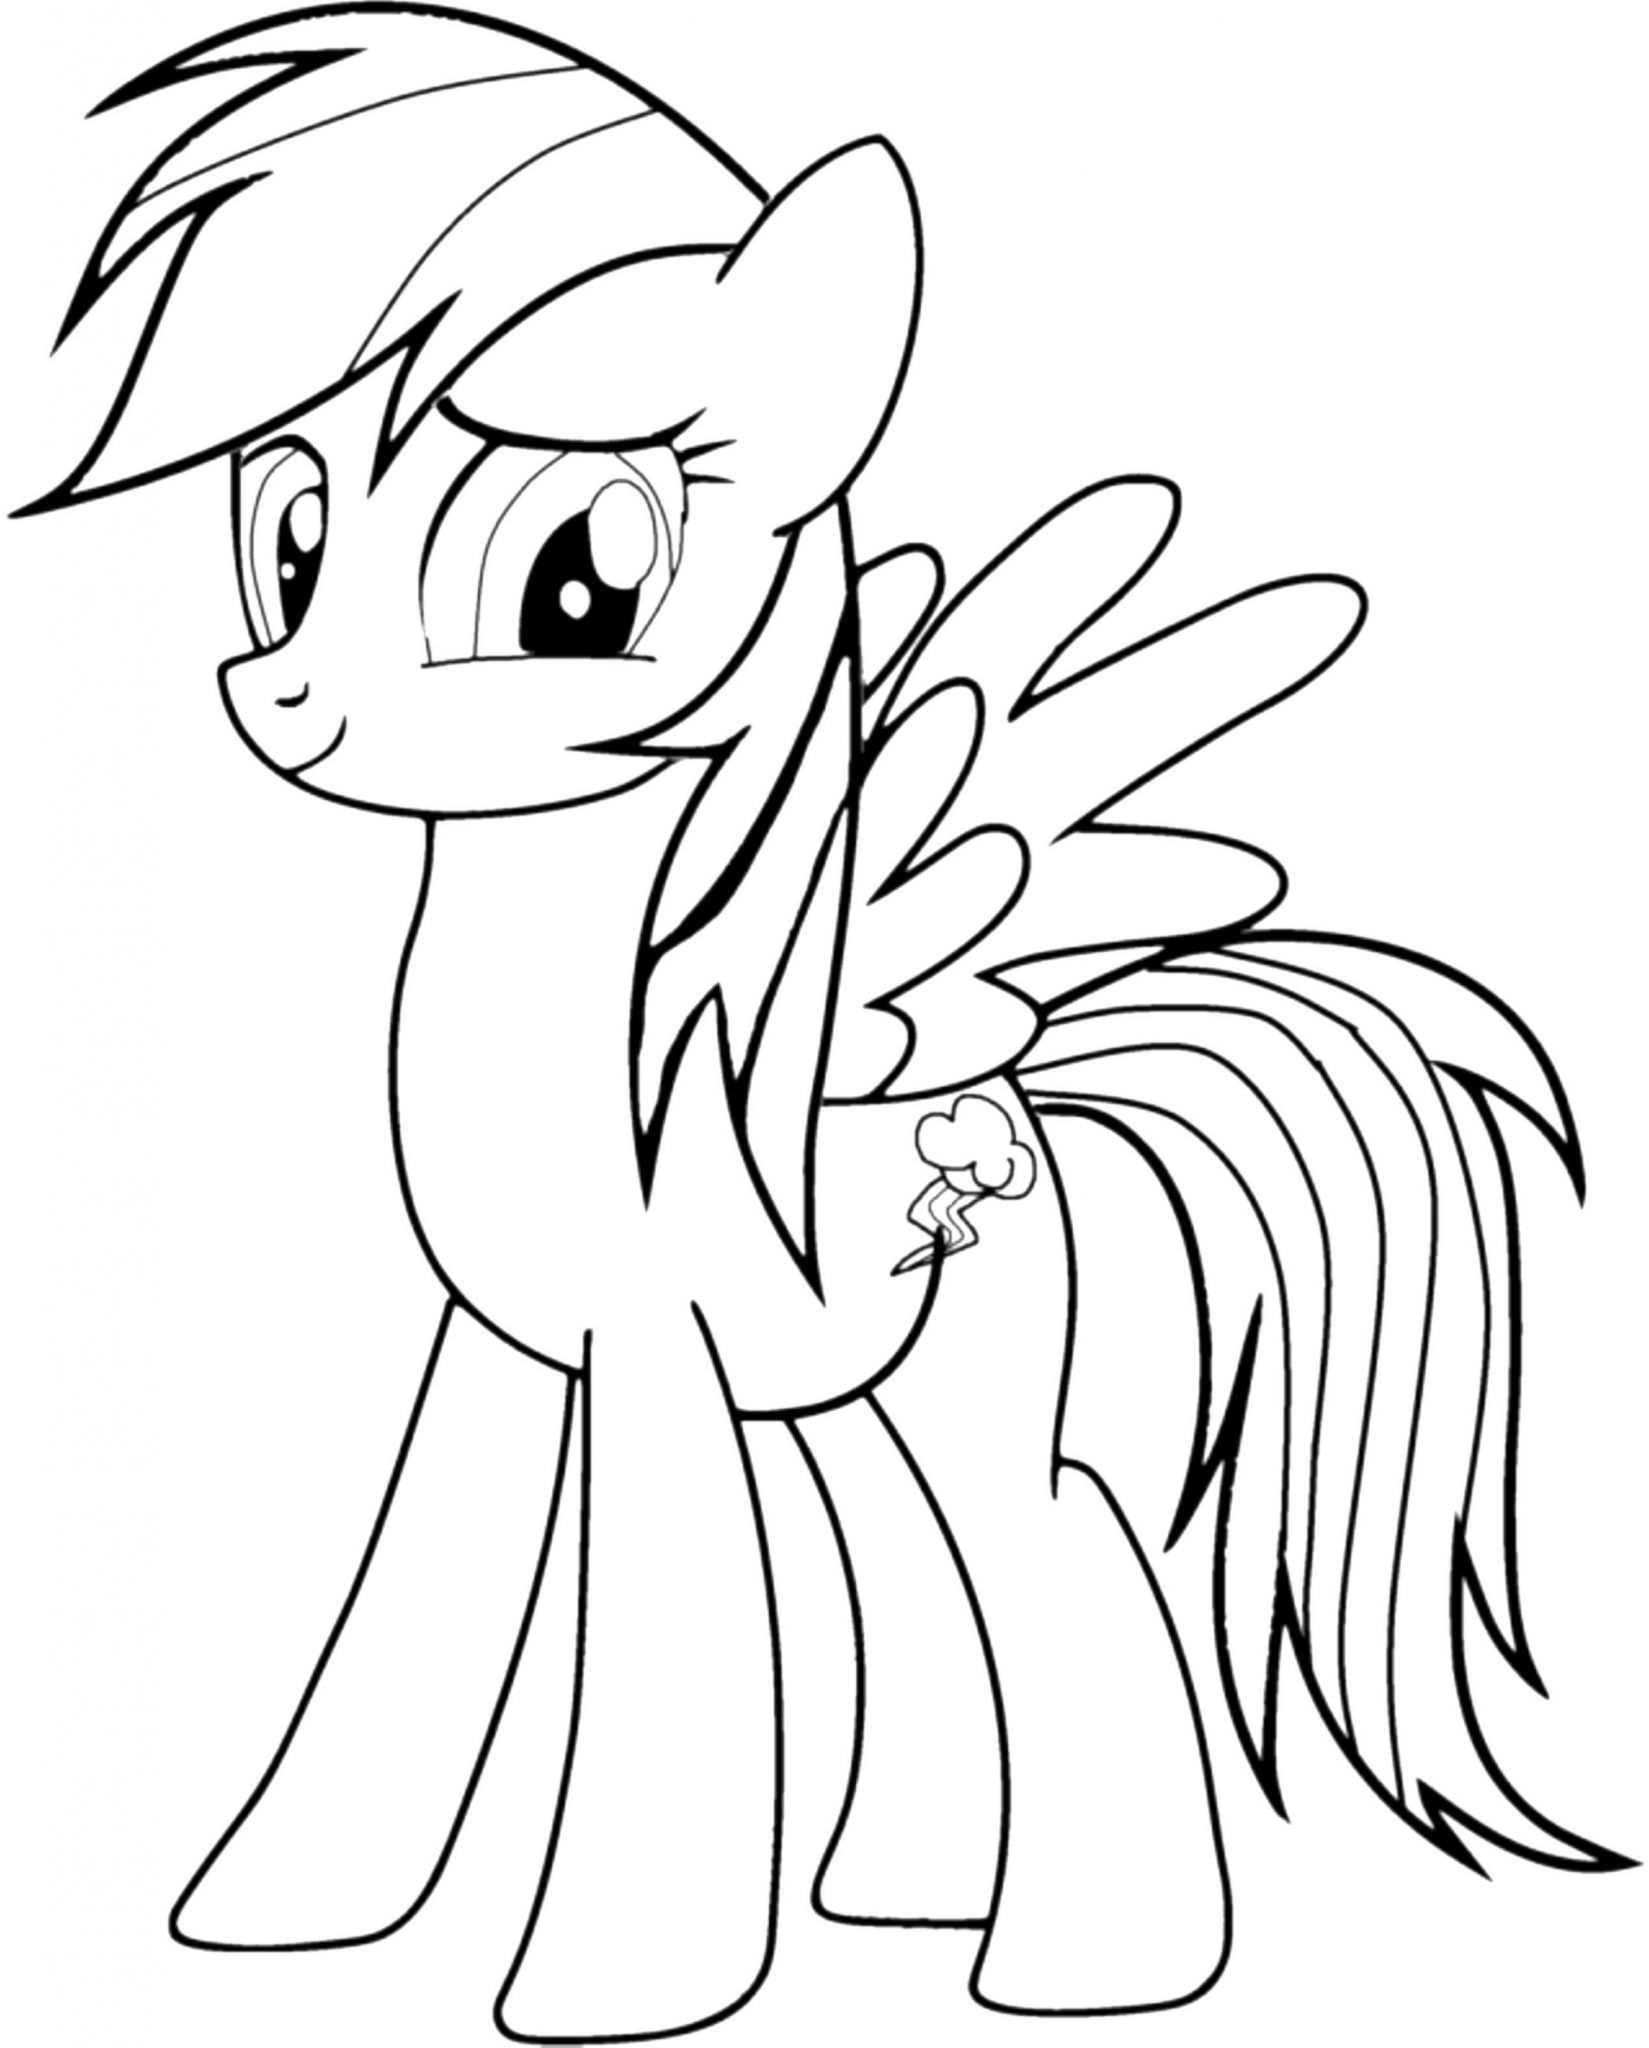 rainbow dash coloring sheet rainbow dash coloring page free download best rainbow rainbow sheet dash coloring